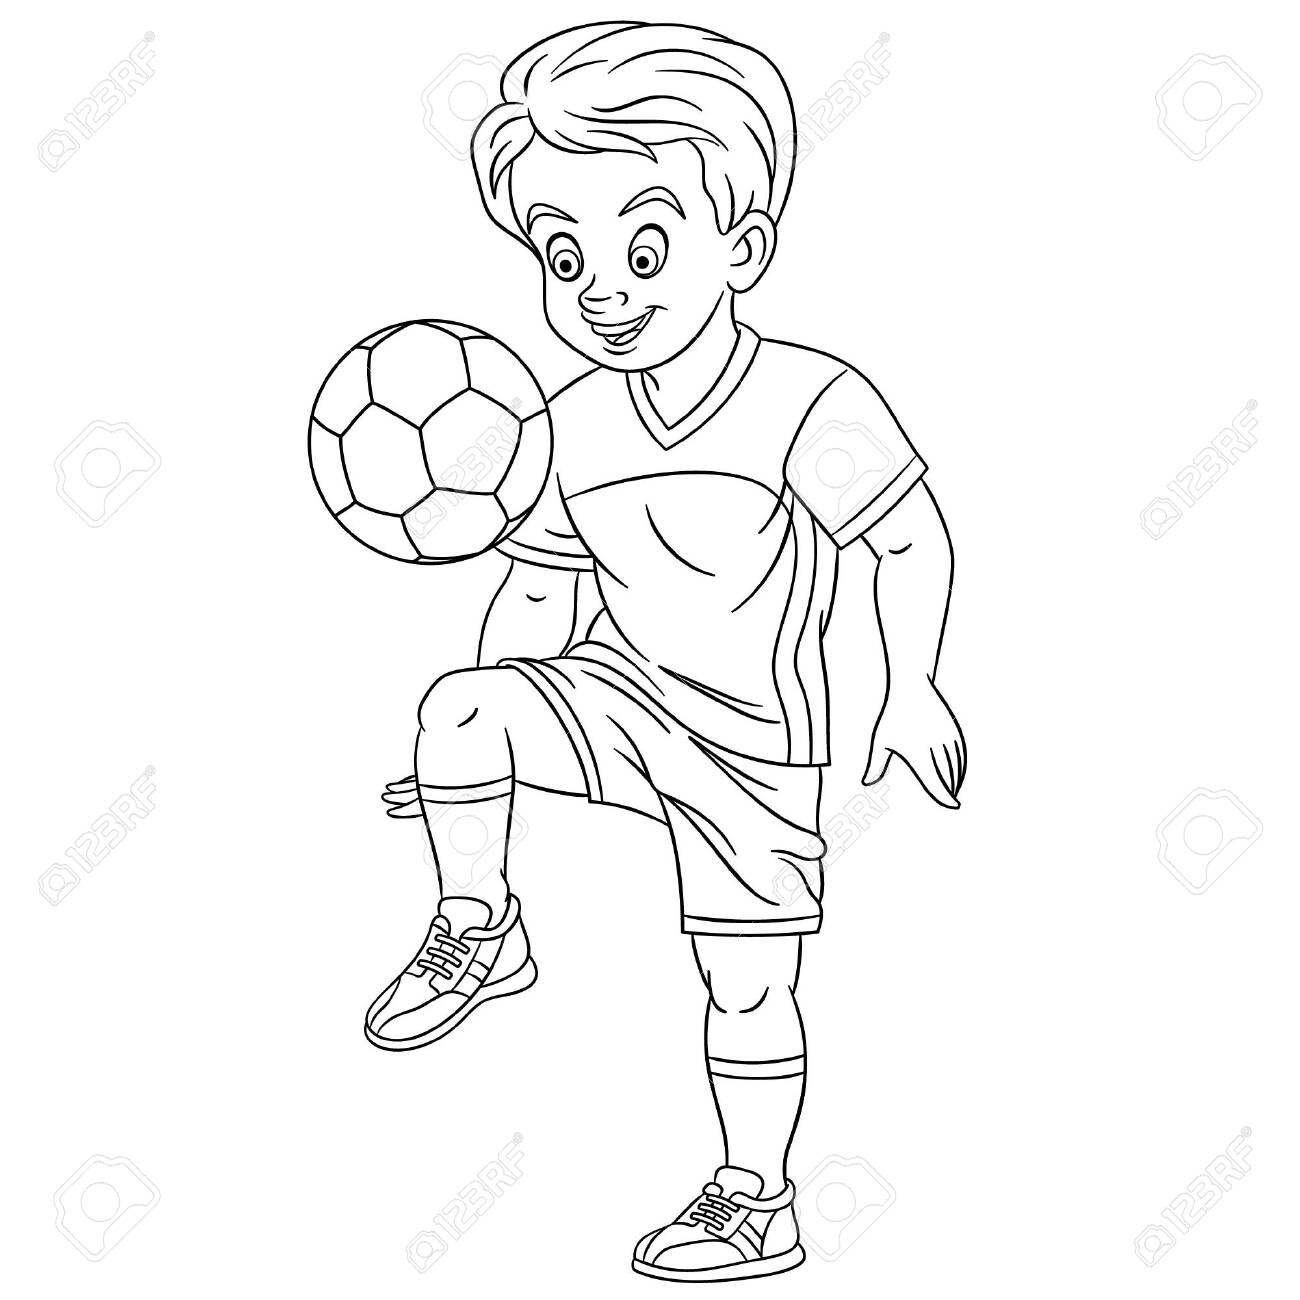 Colouring Page Cute Cartoon Footballer Young Boy Playing Football Royalty Free Cliparts Vectors And Stock Illustration Image 133814731